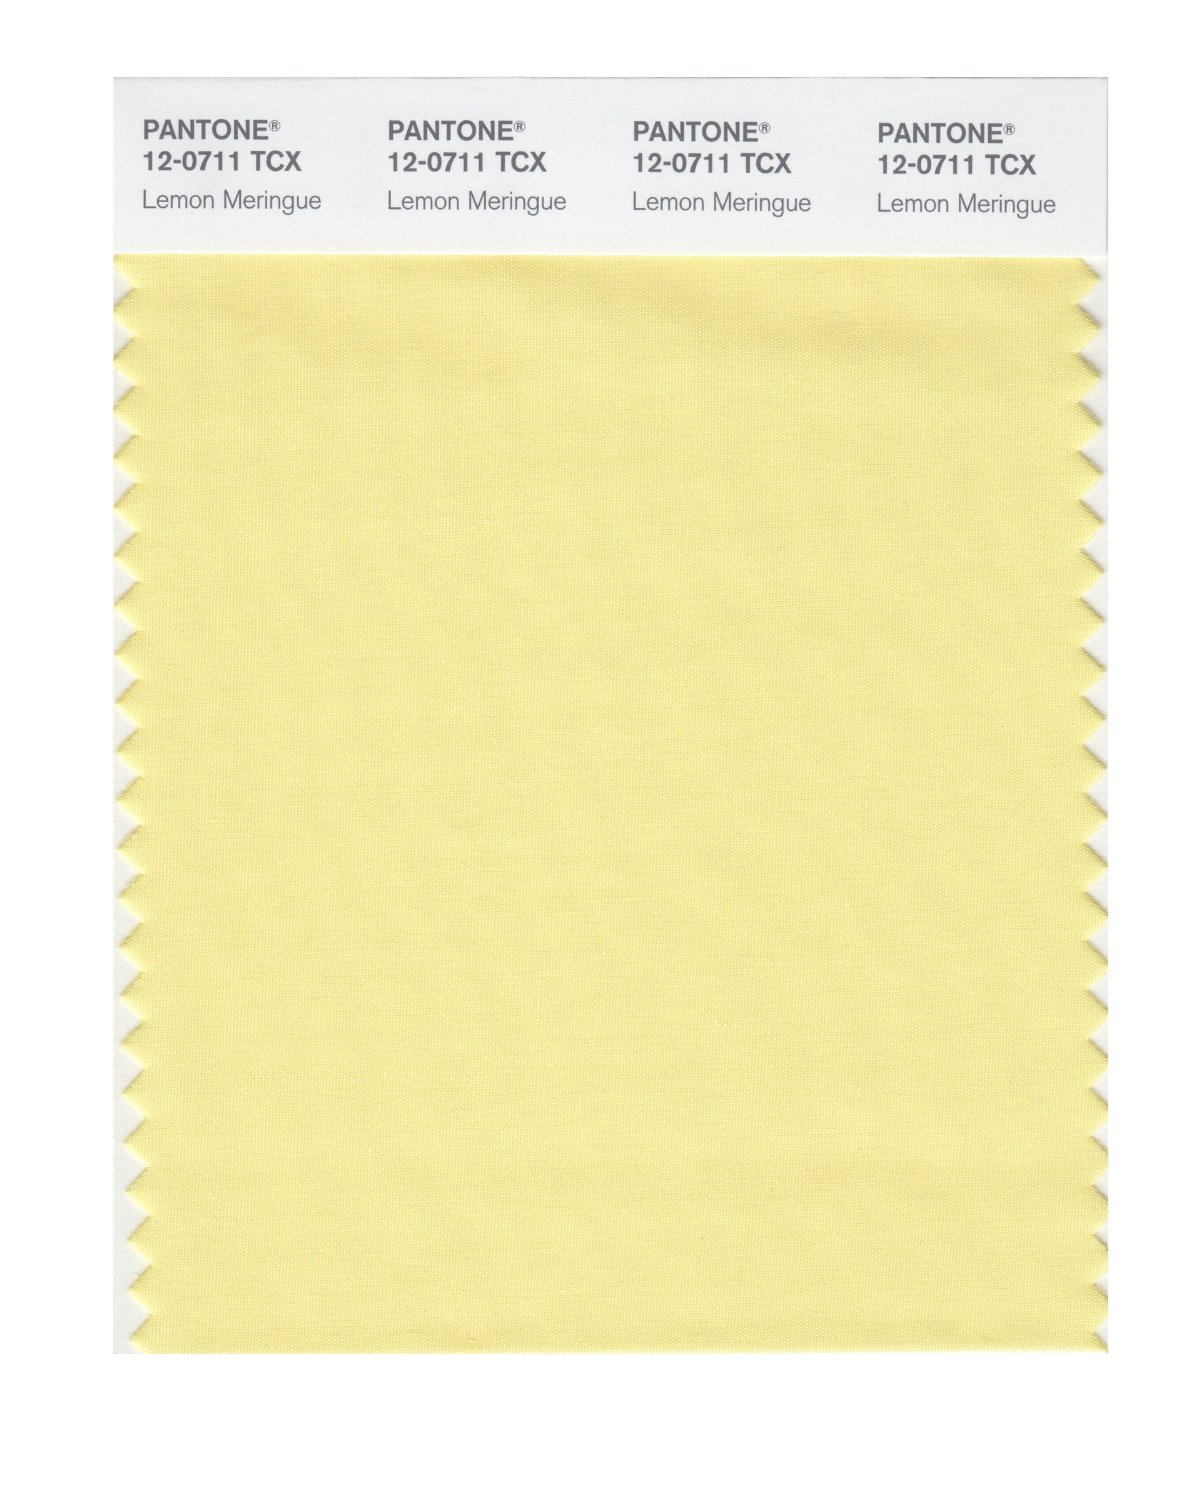 Pantone Smart Swatch 12-0711 Lemon Meringue